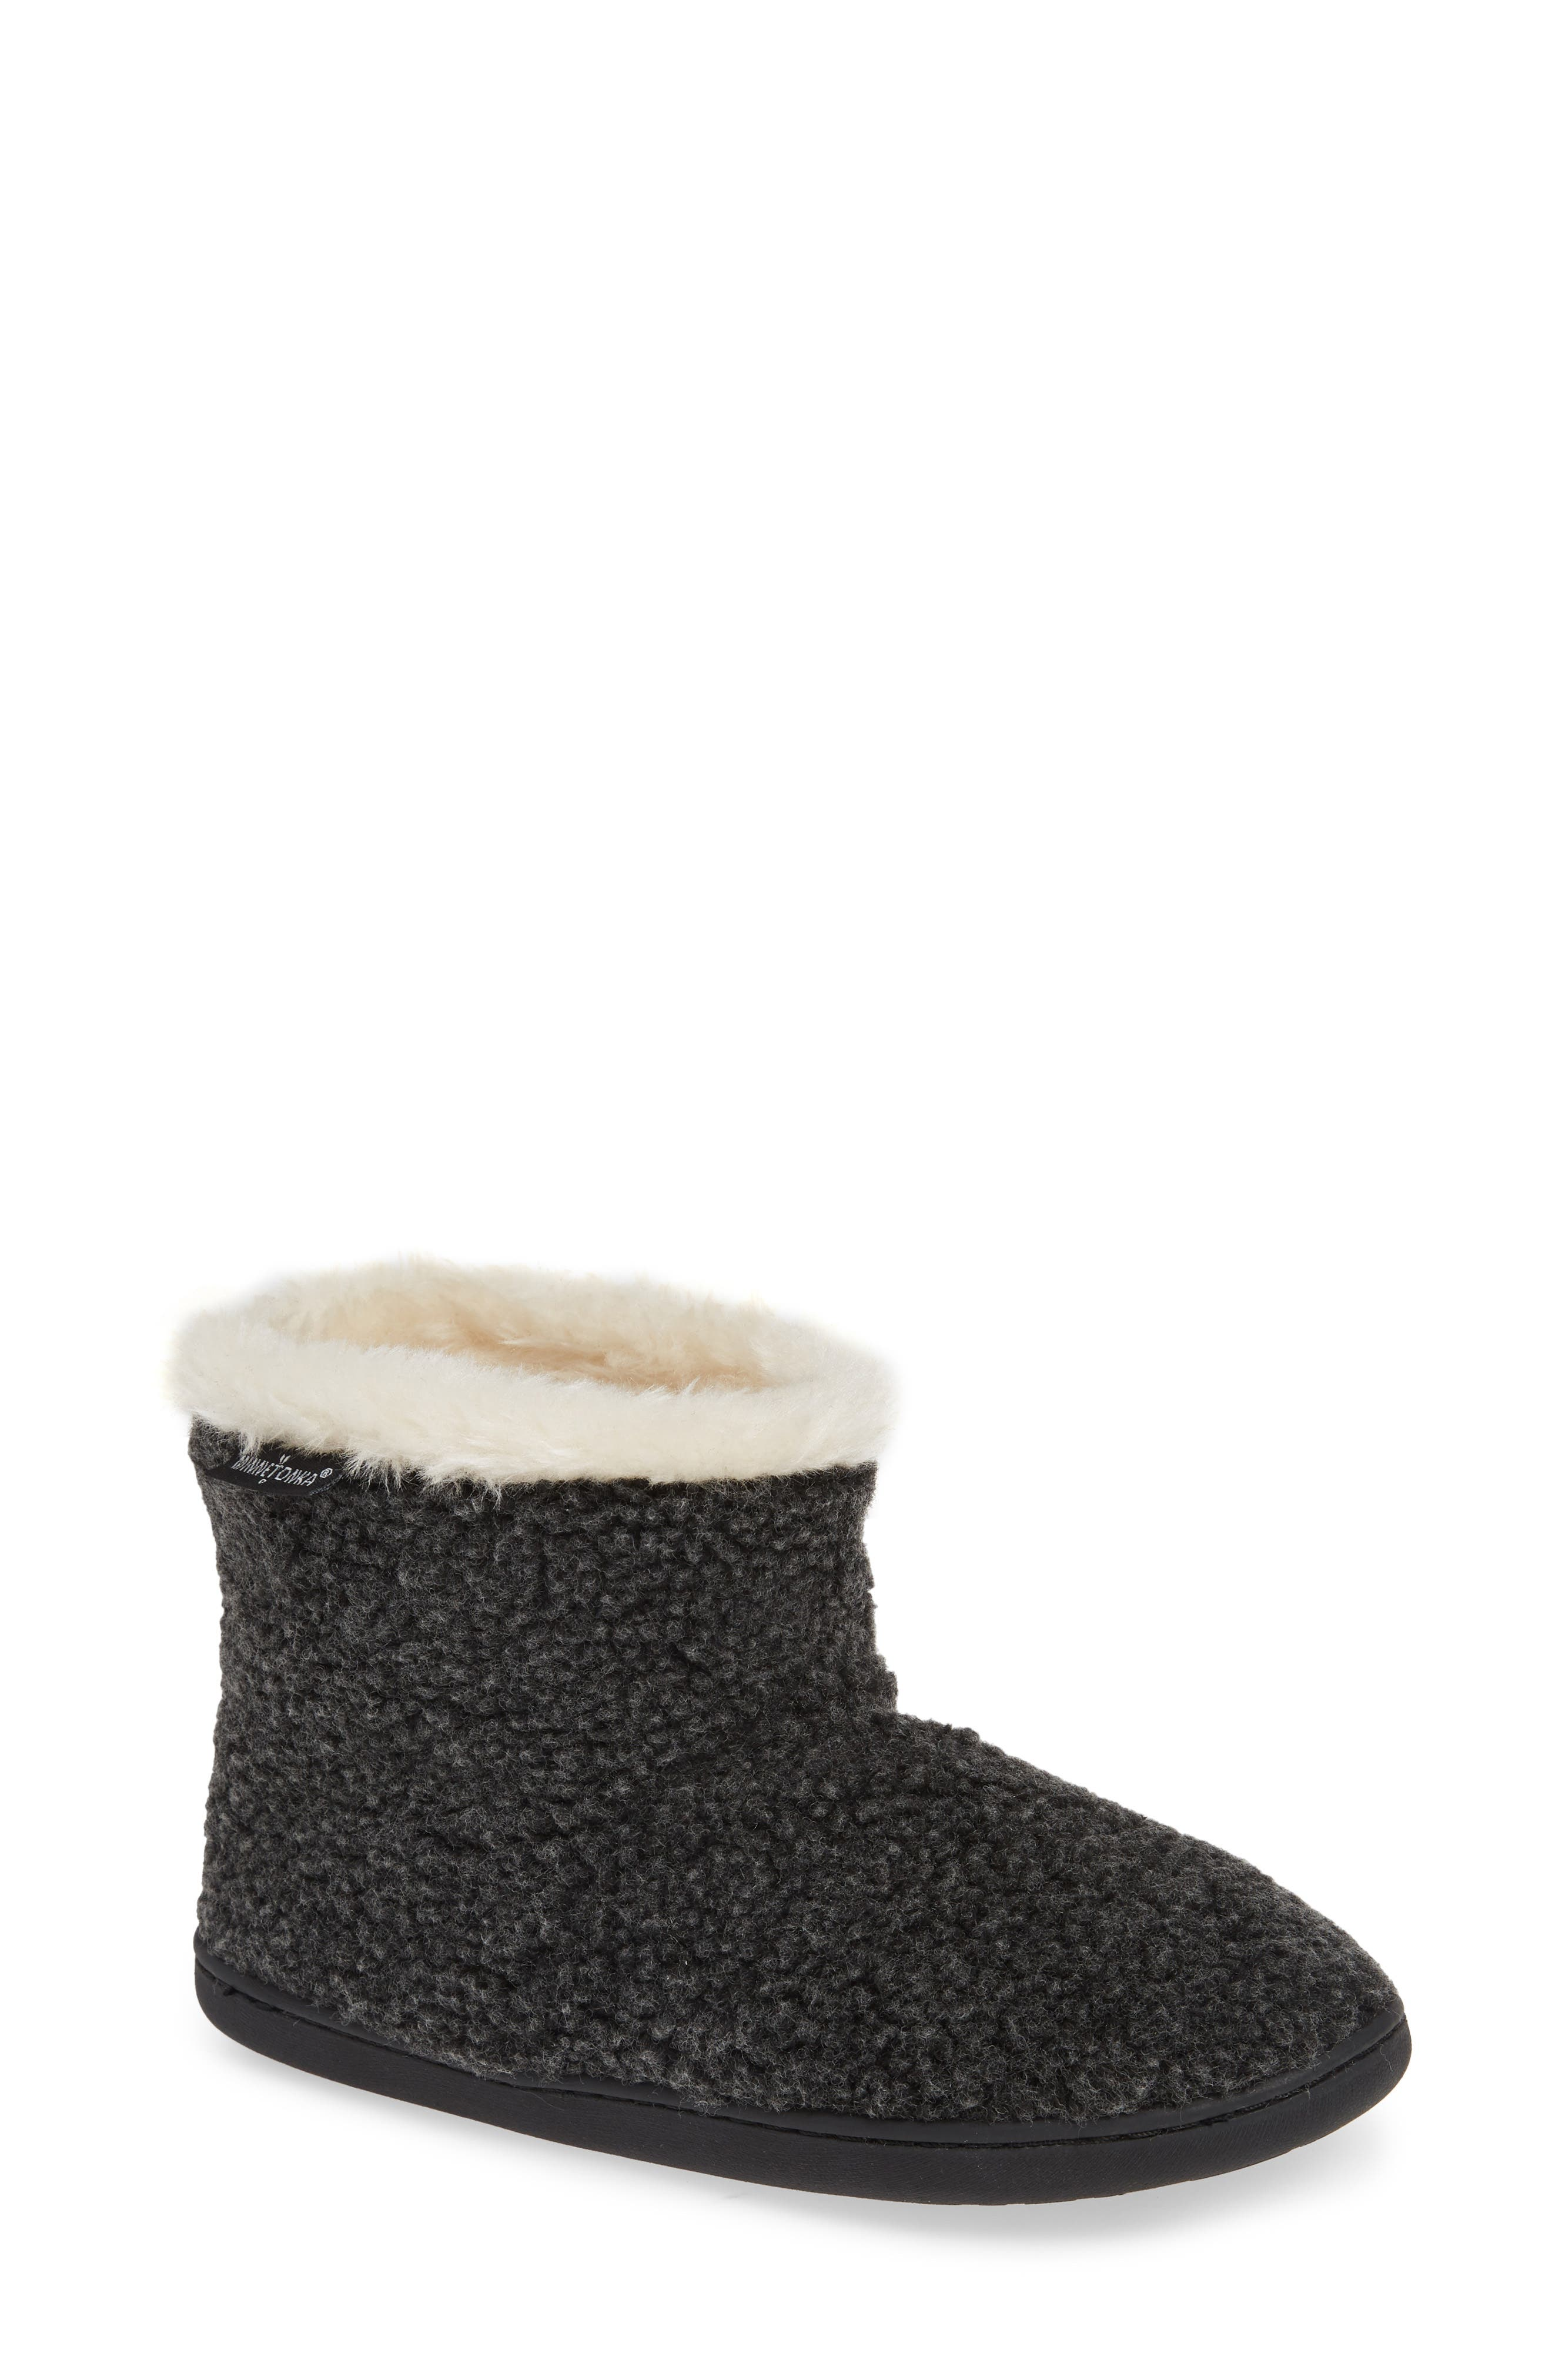 Betty Bootie,                             Main thumbnail 1, color,                             CHARCOAL BERBER